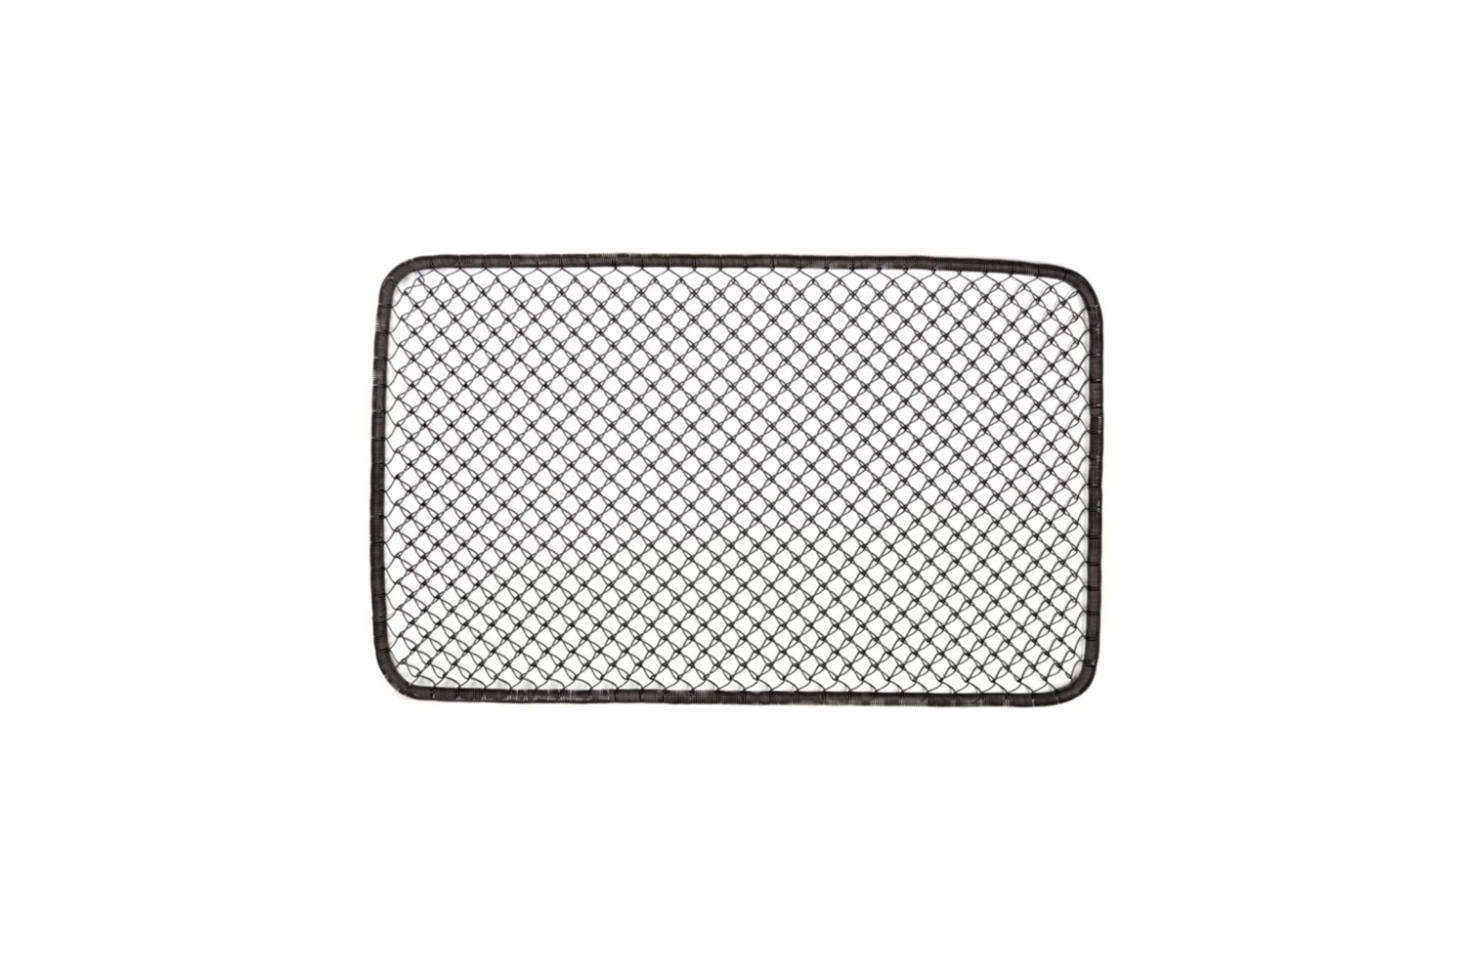 The Galghard Wire Doormat from Gracie Oaks is made of coiled wire with a brown finis; $48.99 at Wayfair.